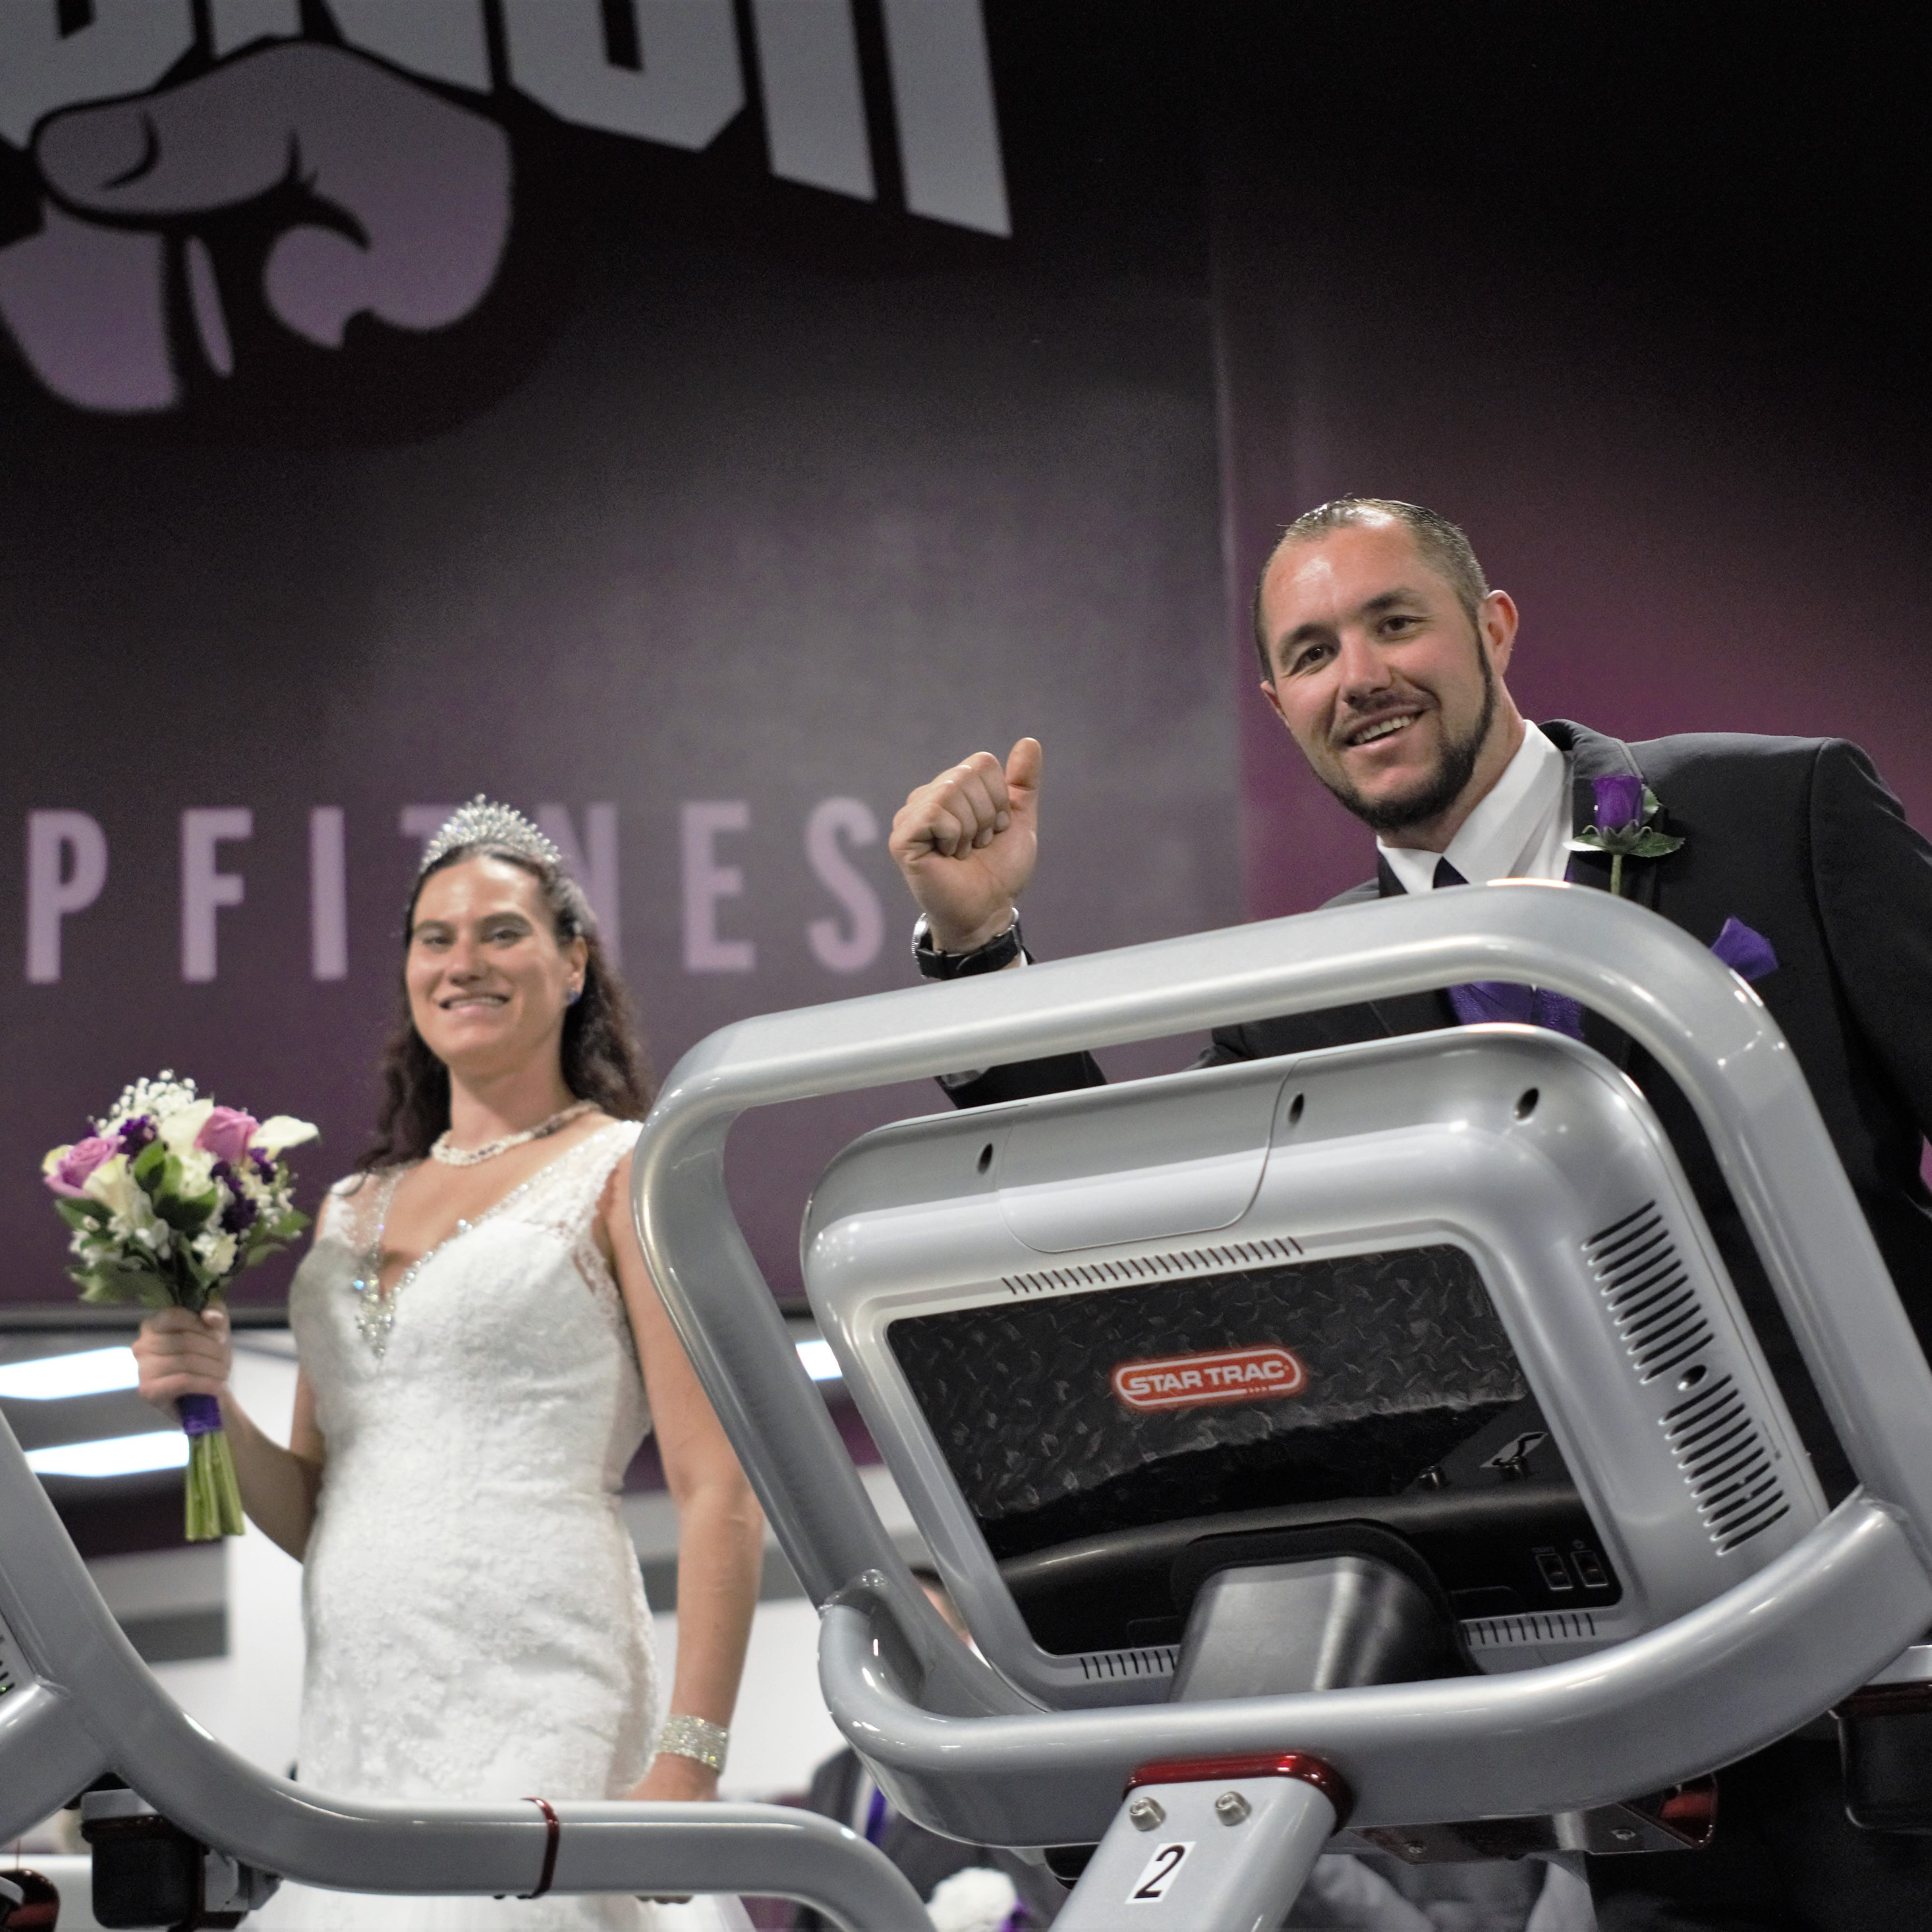 Las Cruces couple married in Crunch Fitness gym shares story behind wedding